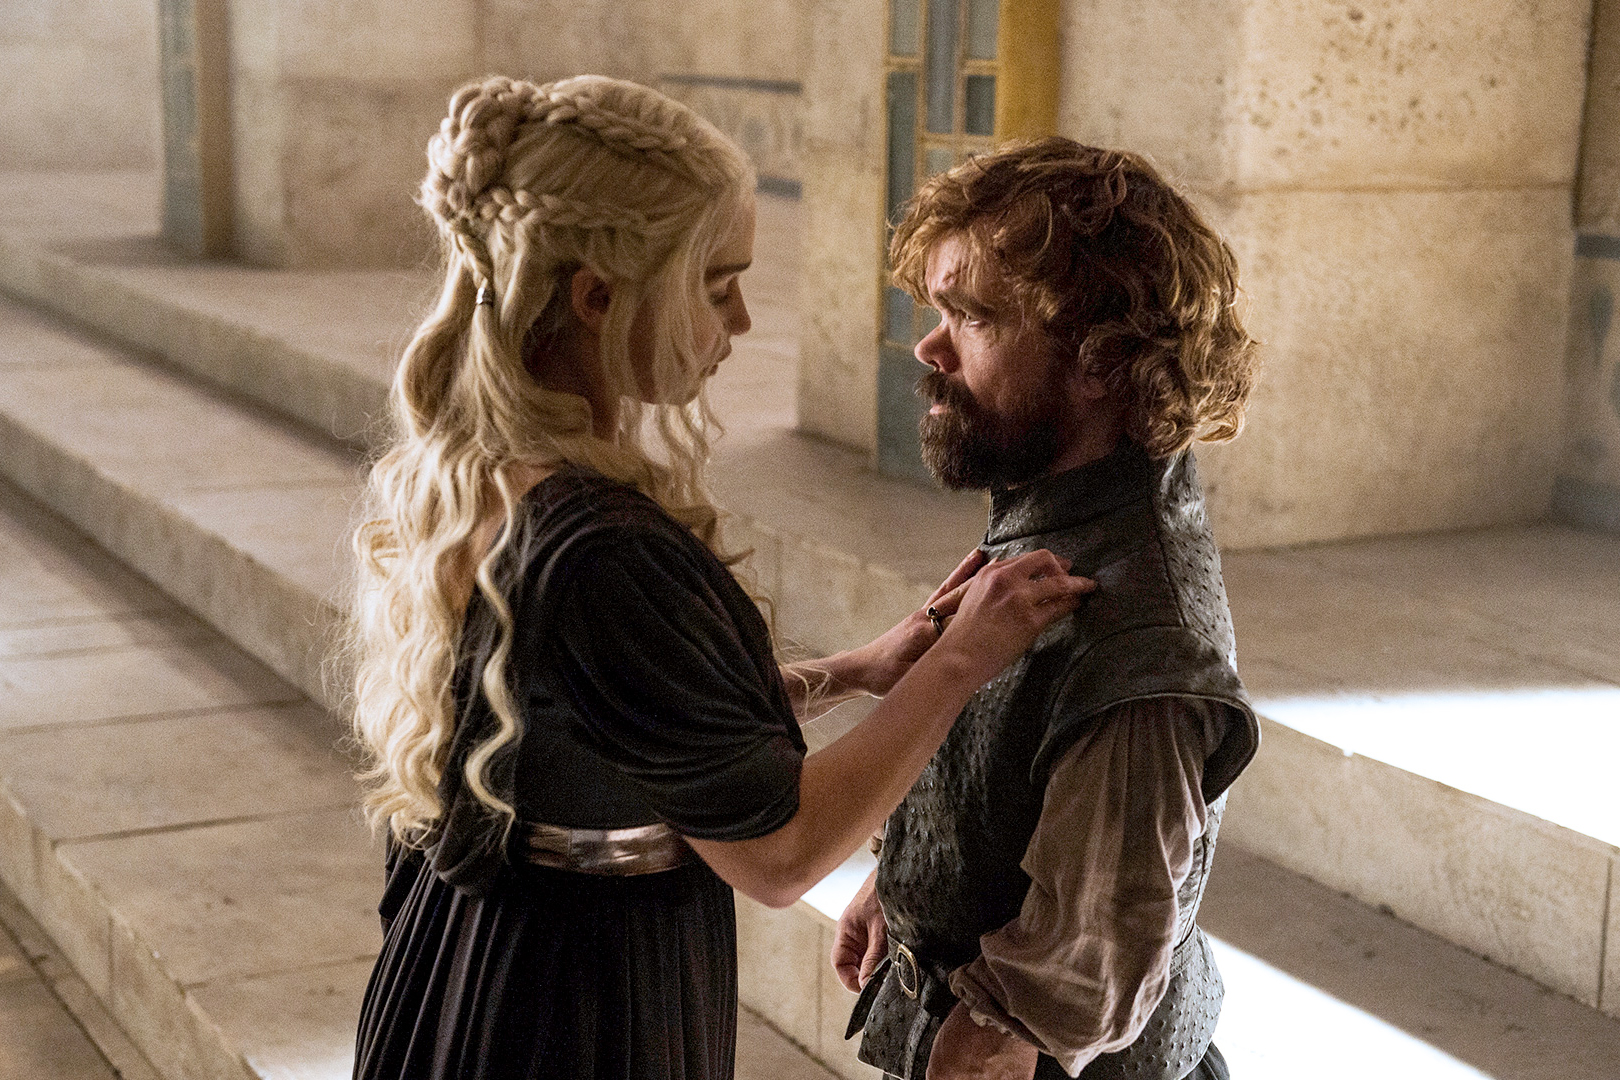 Emilia Clarke and Peter Dinklage in season 6 of 'Game of Thrones.'